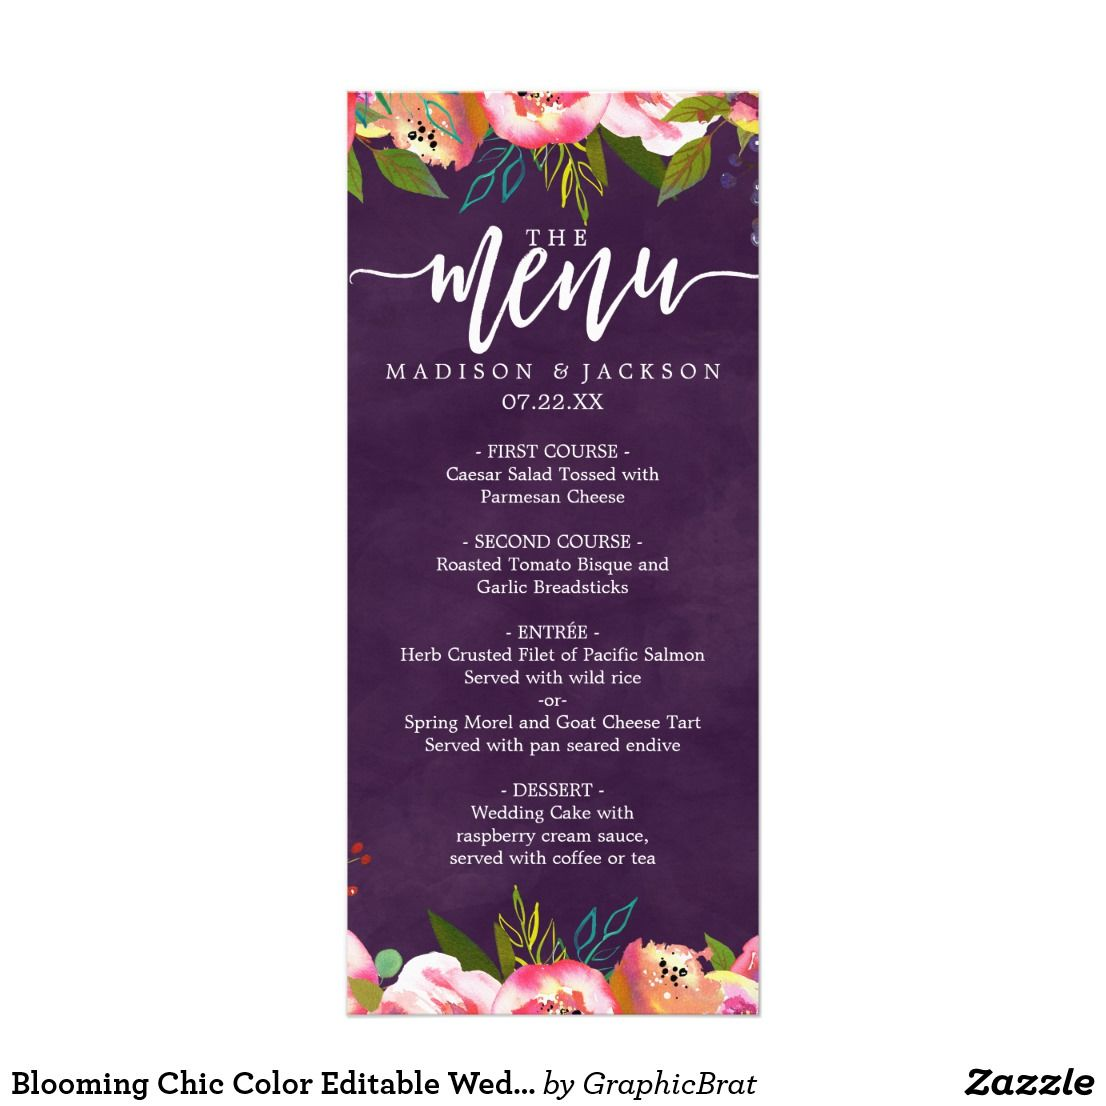 Blooming Chic Color Editable Wedding Menu Blooming Chic Color ...